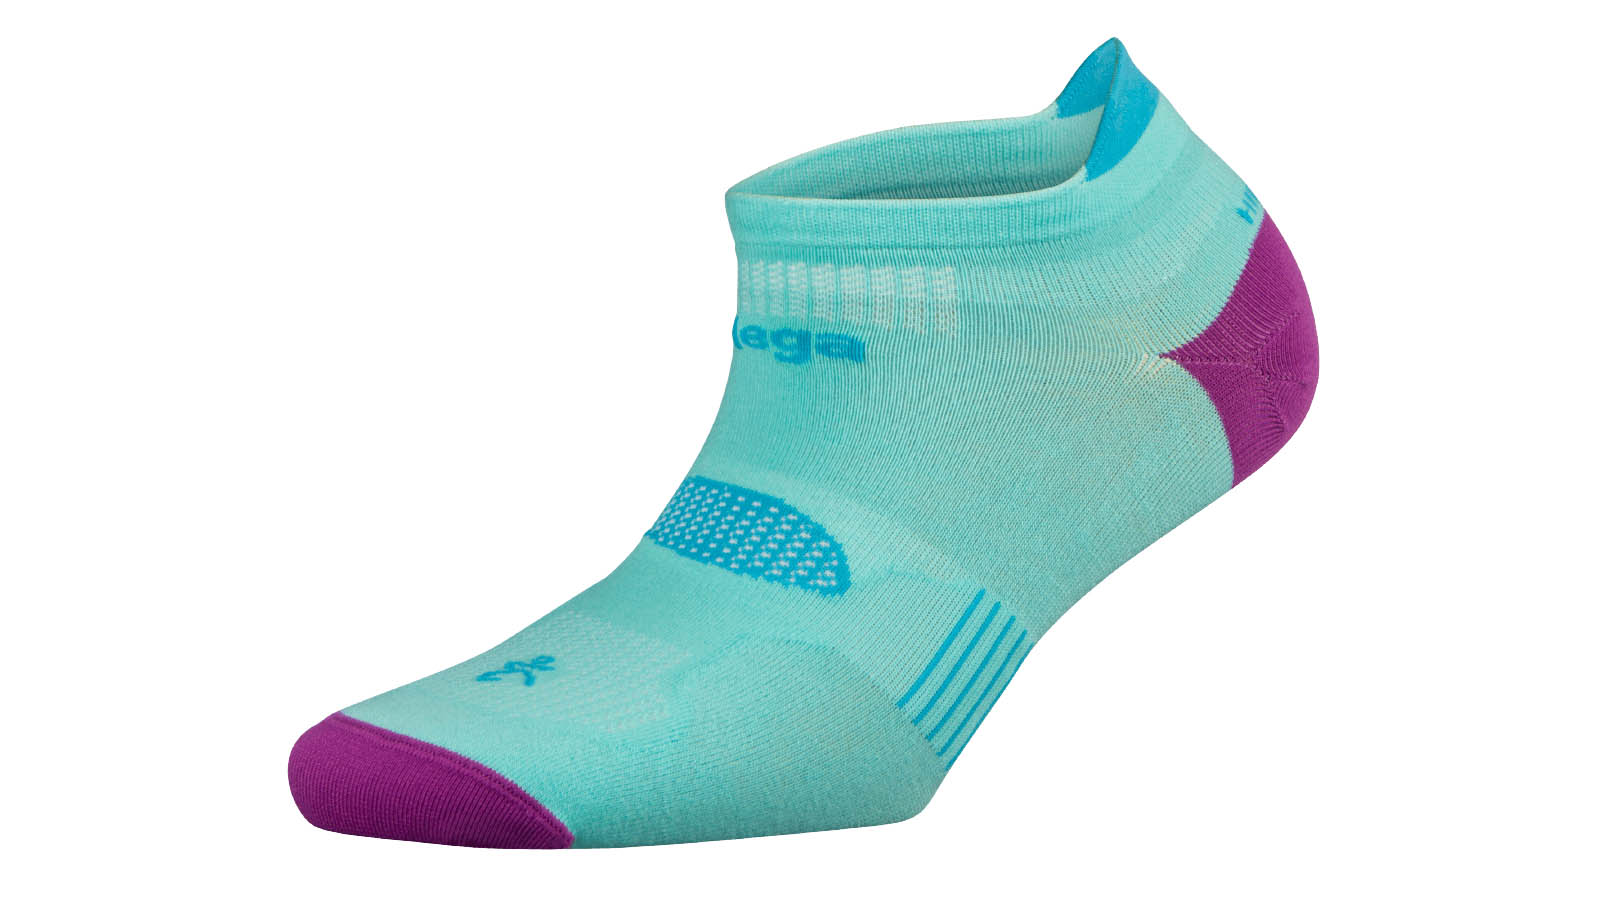 Balega Hidden Dry 2 Sock - Color: Light Aqua/Pinkberry Size: L, Light Aqua, large, image 1